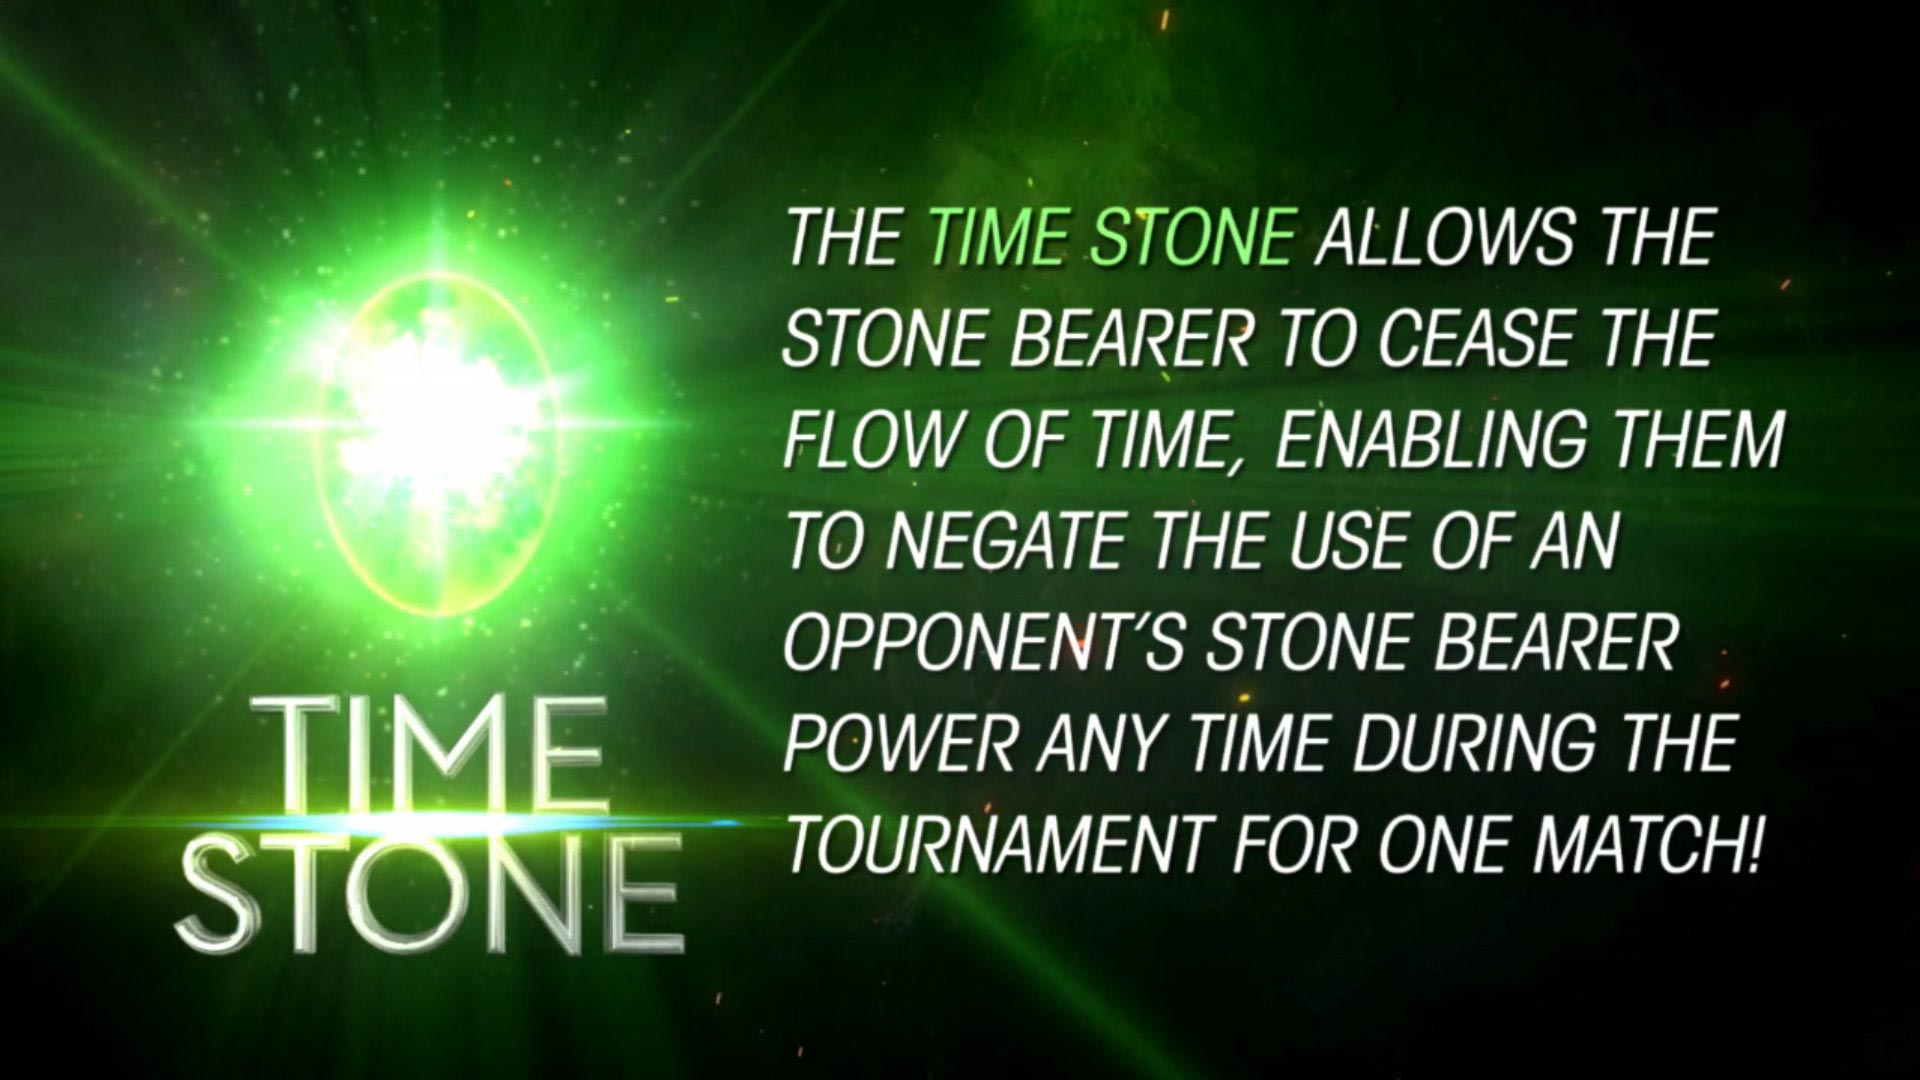 Infinity Stone Effects In Battle For The Stones 3 Out Of 6